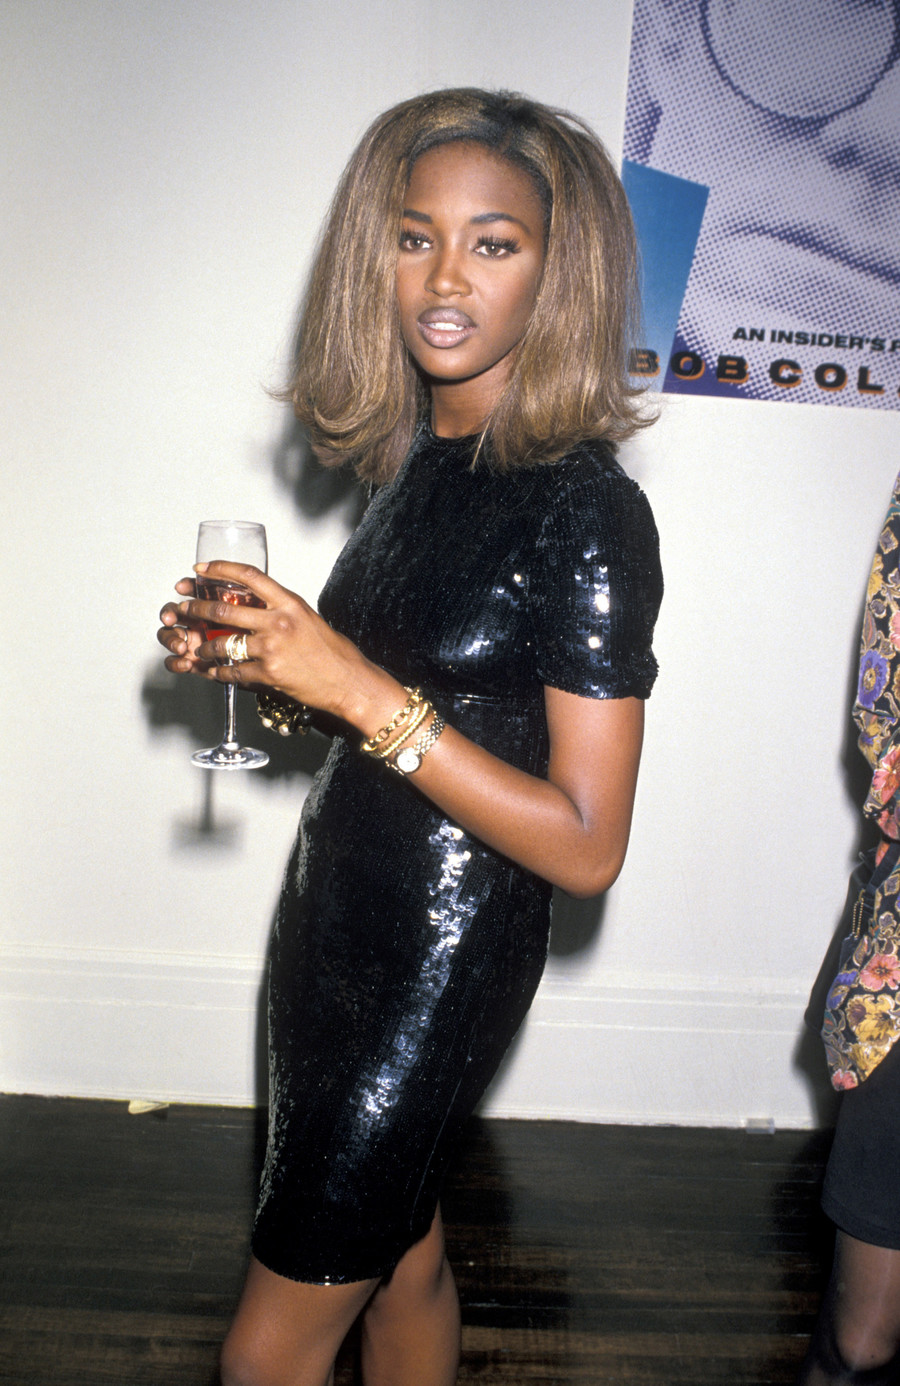 Naomi Campbell fot. Ron Galella, Ltd. / Contributor/ GettyImages